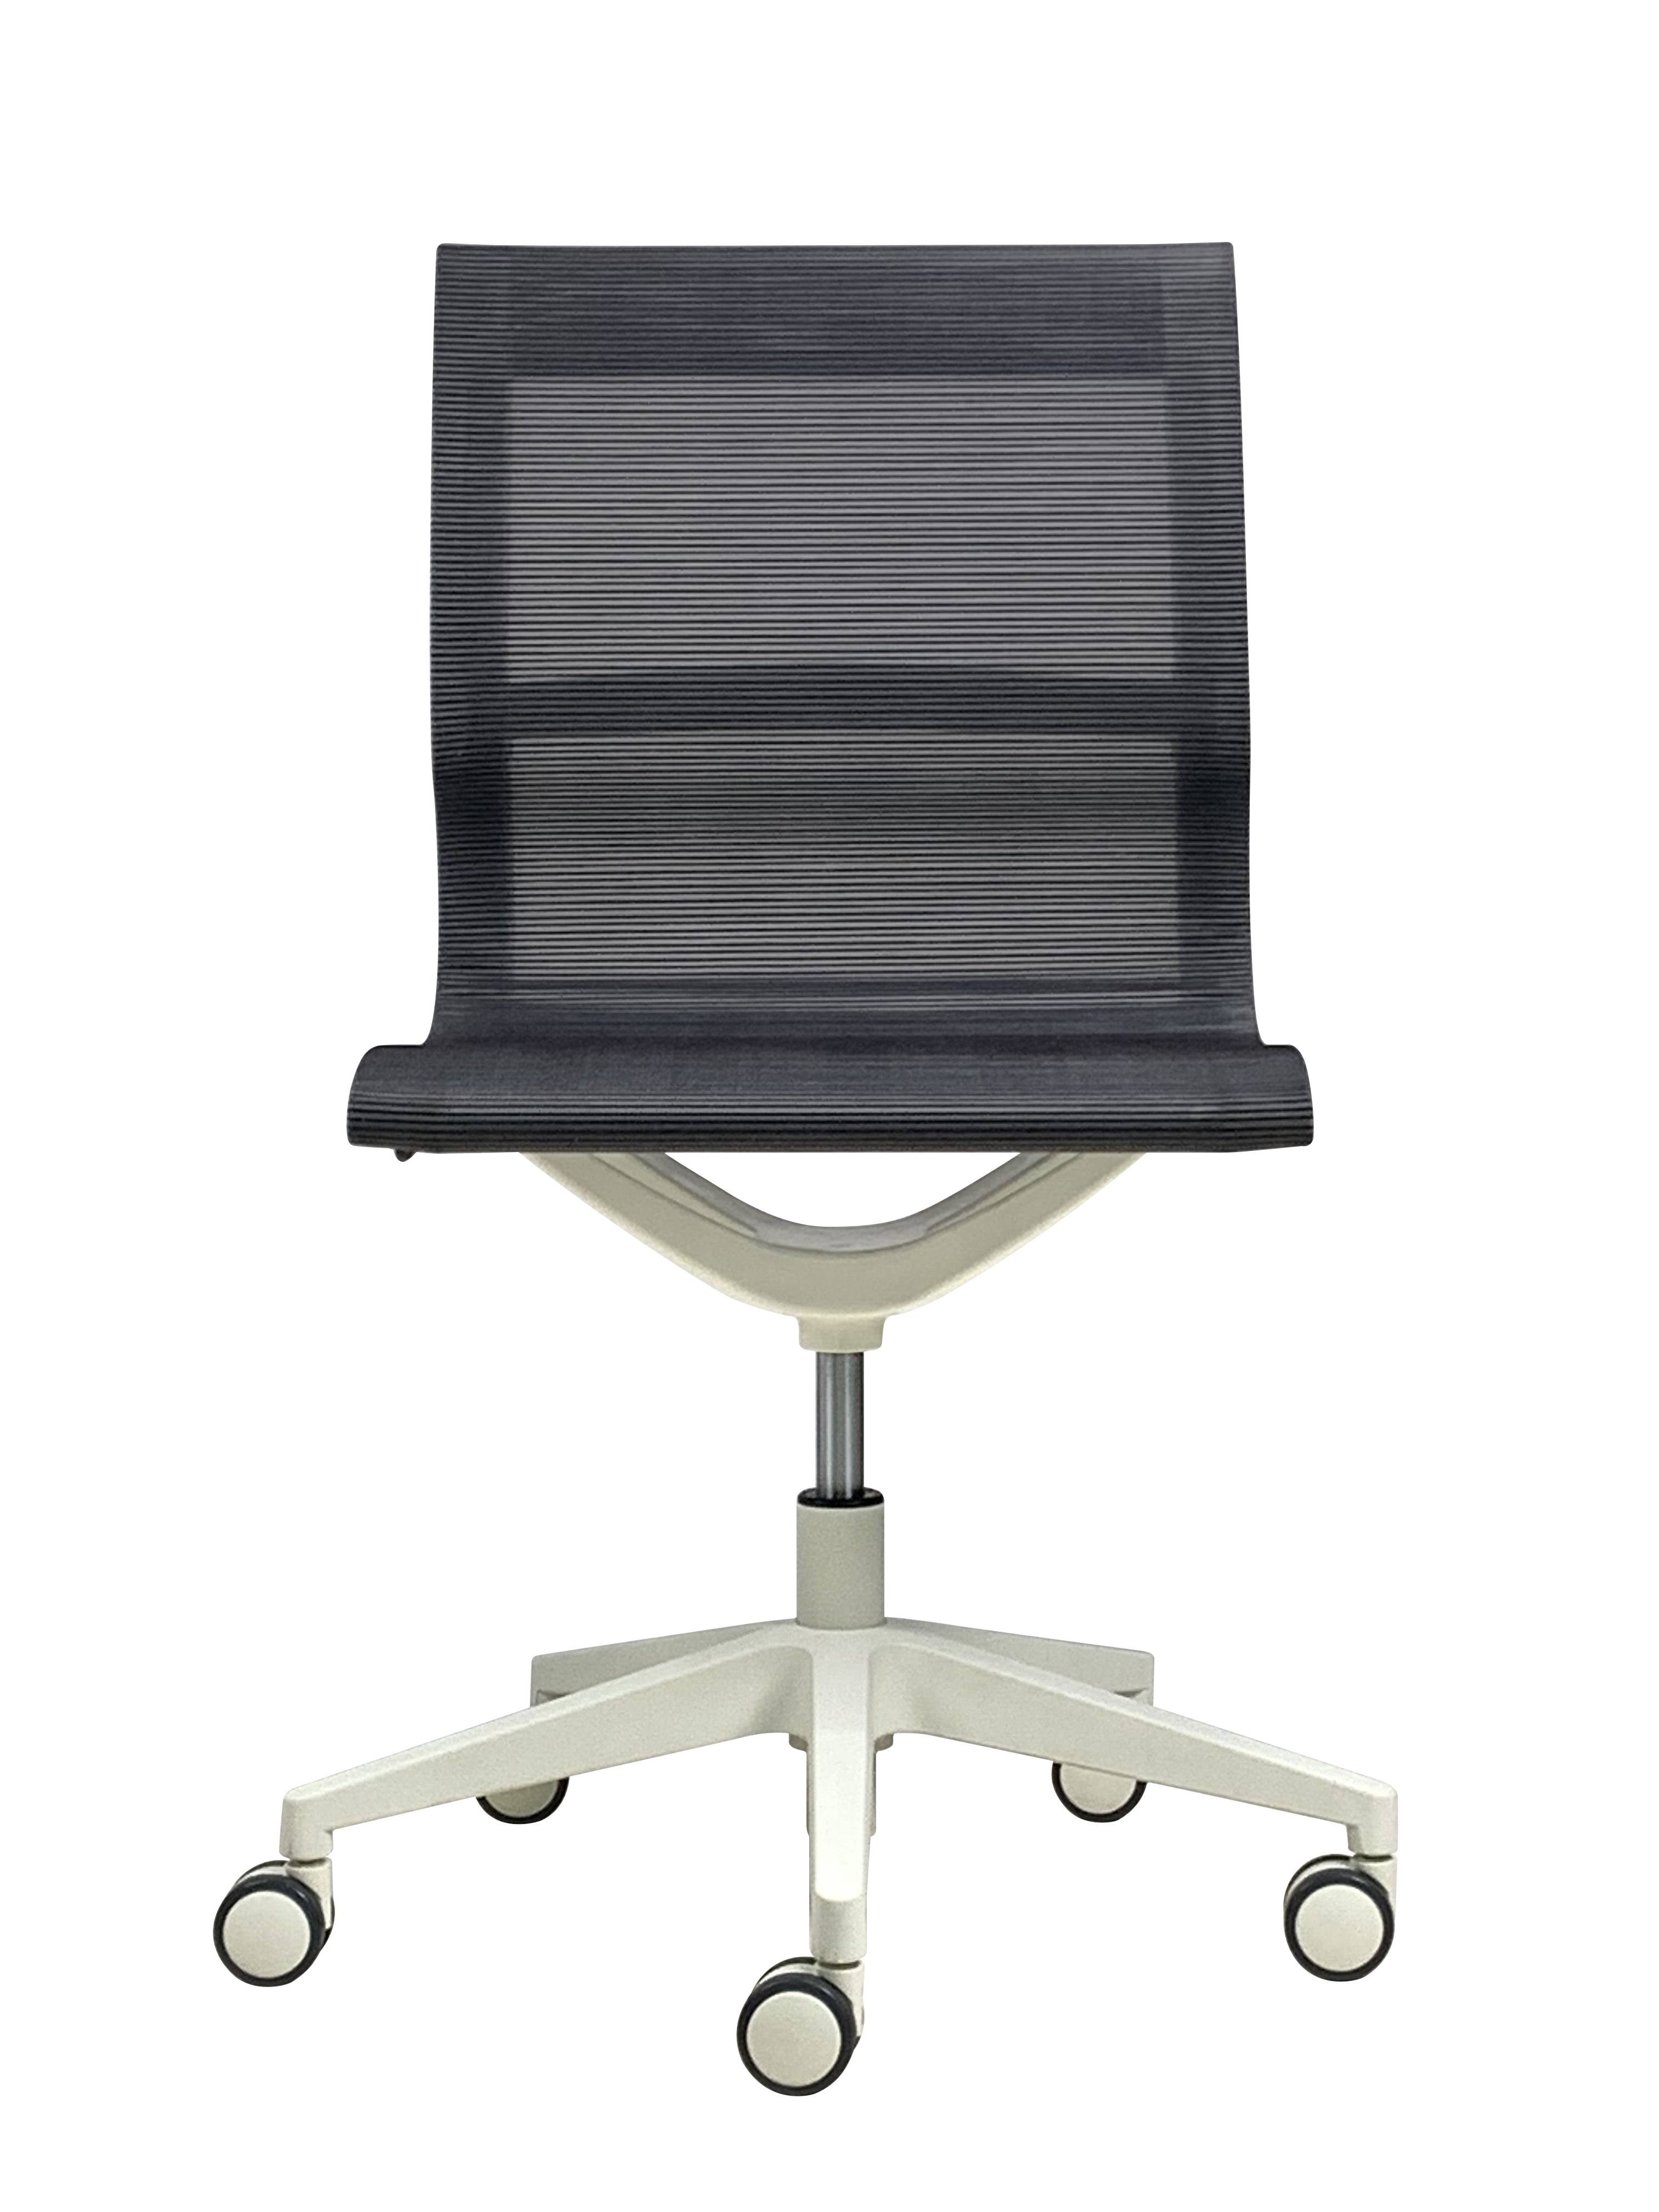 kinetic chair - front view